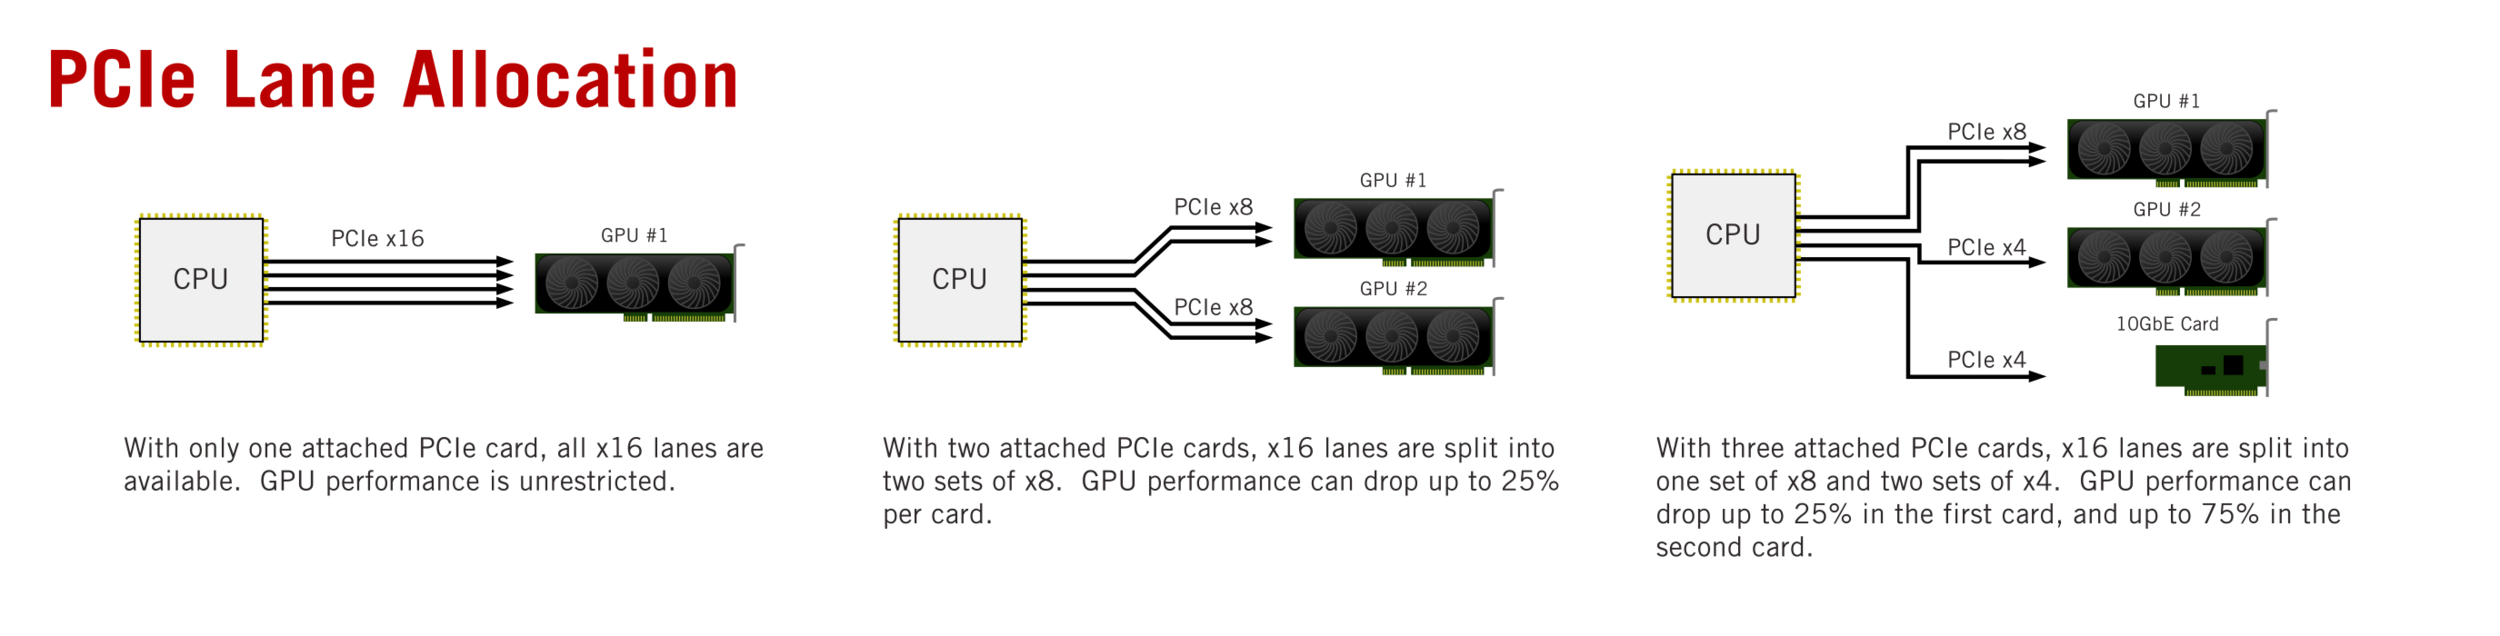 How PCIe lanes are divided between attached peripheral devices. While this particular diagram shows the peripherals as attached PCIe cards, integrated PCIe cards that are not part of the native chipset are attached the same way internally.